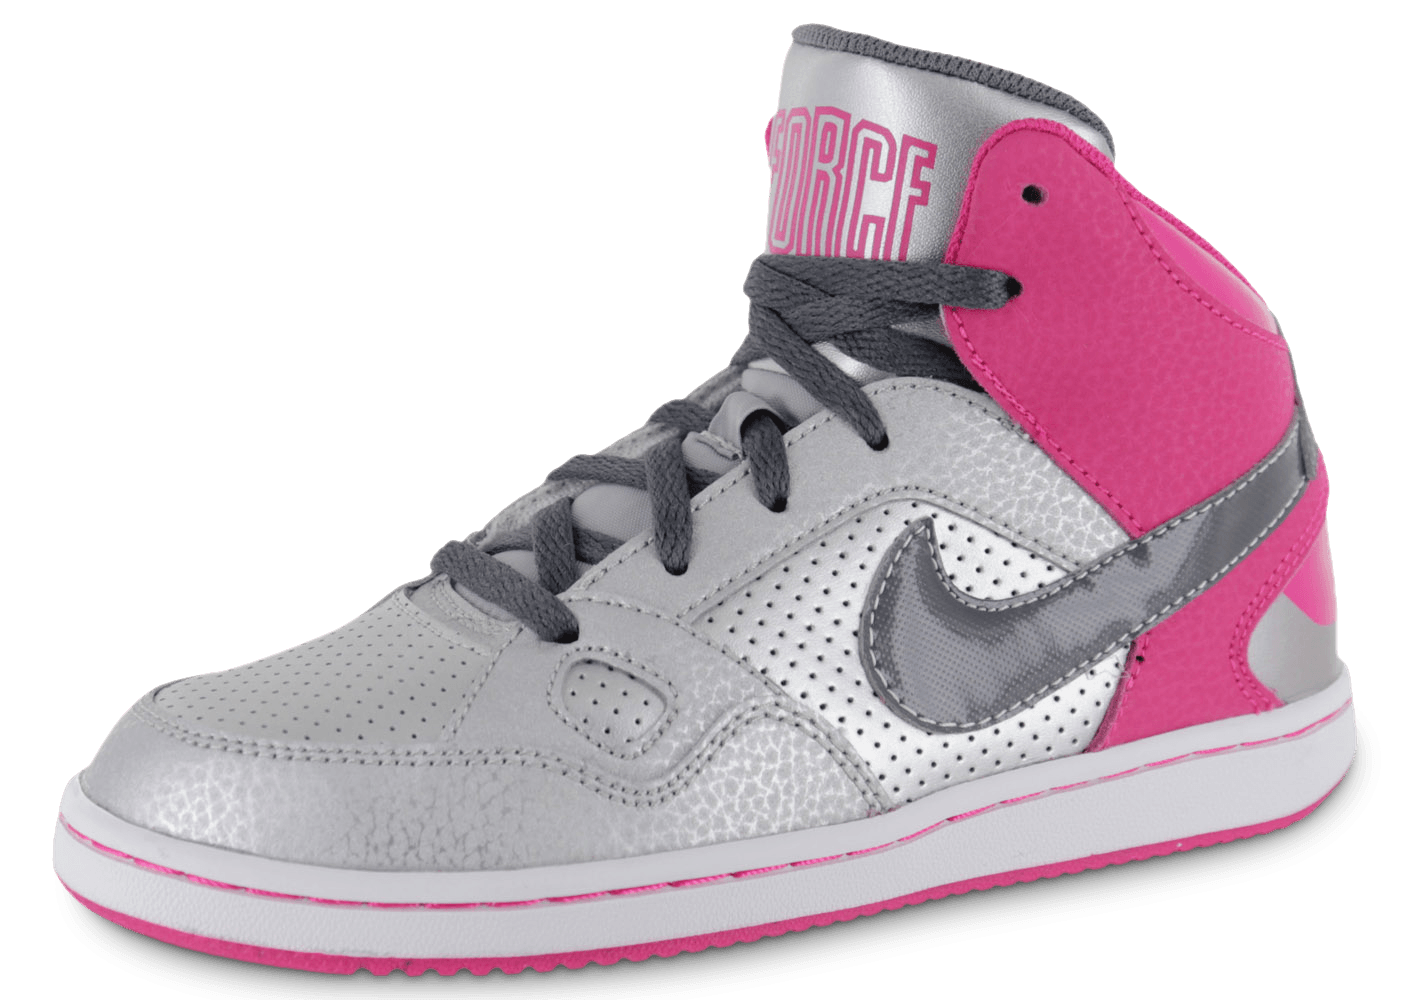 2de434f3f873f Nike Son Of Force Enfant Argent - Chaussures Chaussures - Chausport